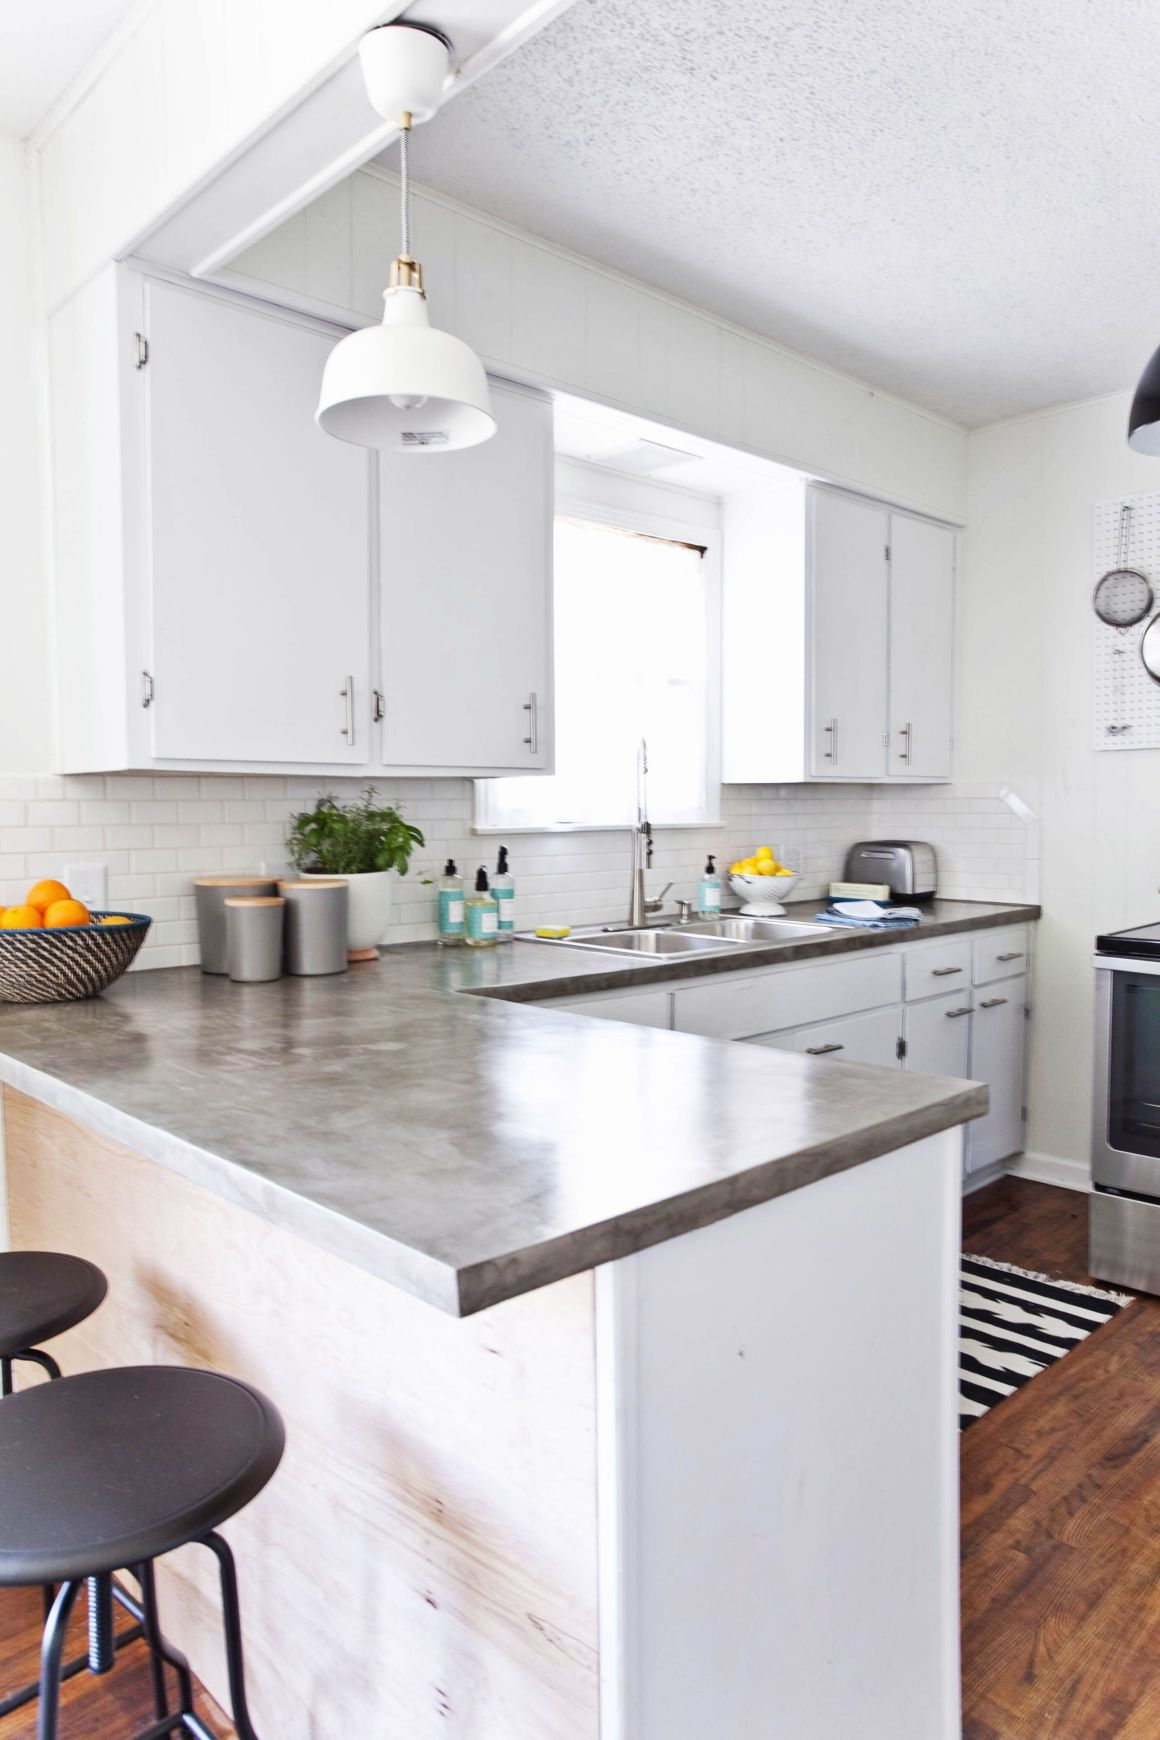 14 best white kitchen cabinets - design ideas for white cabinets